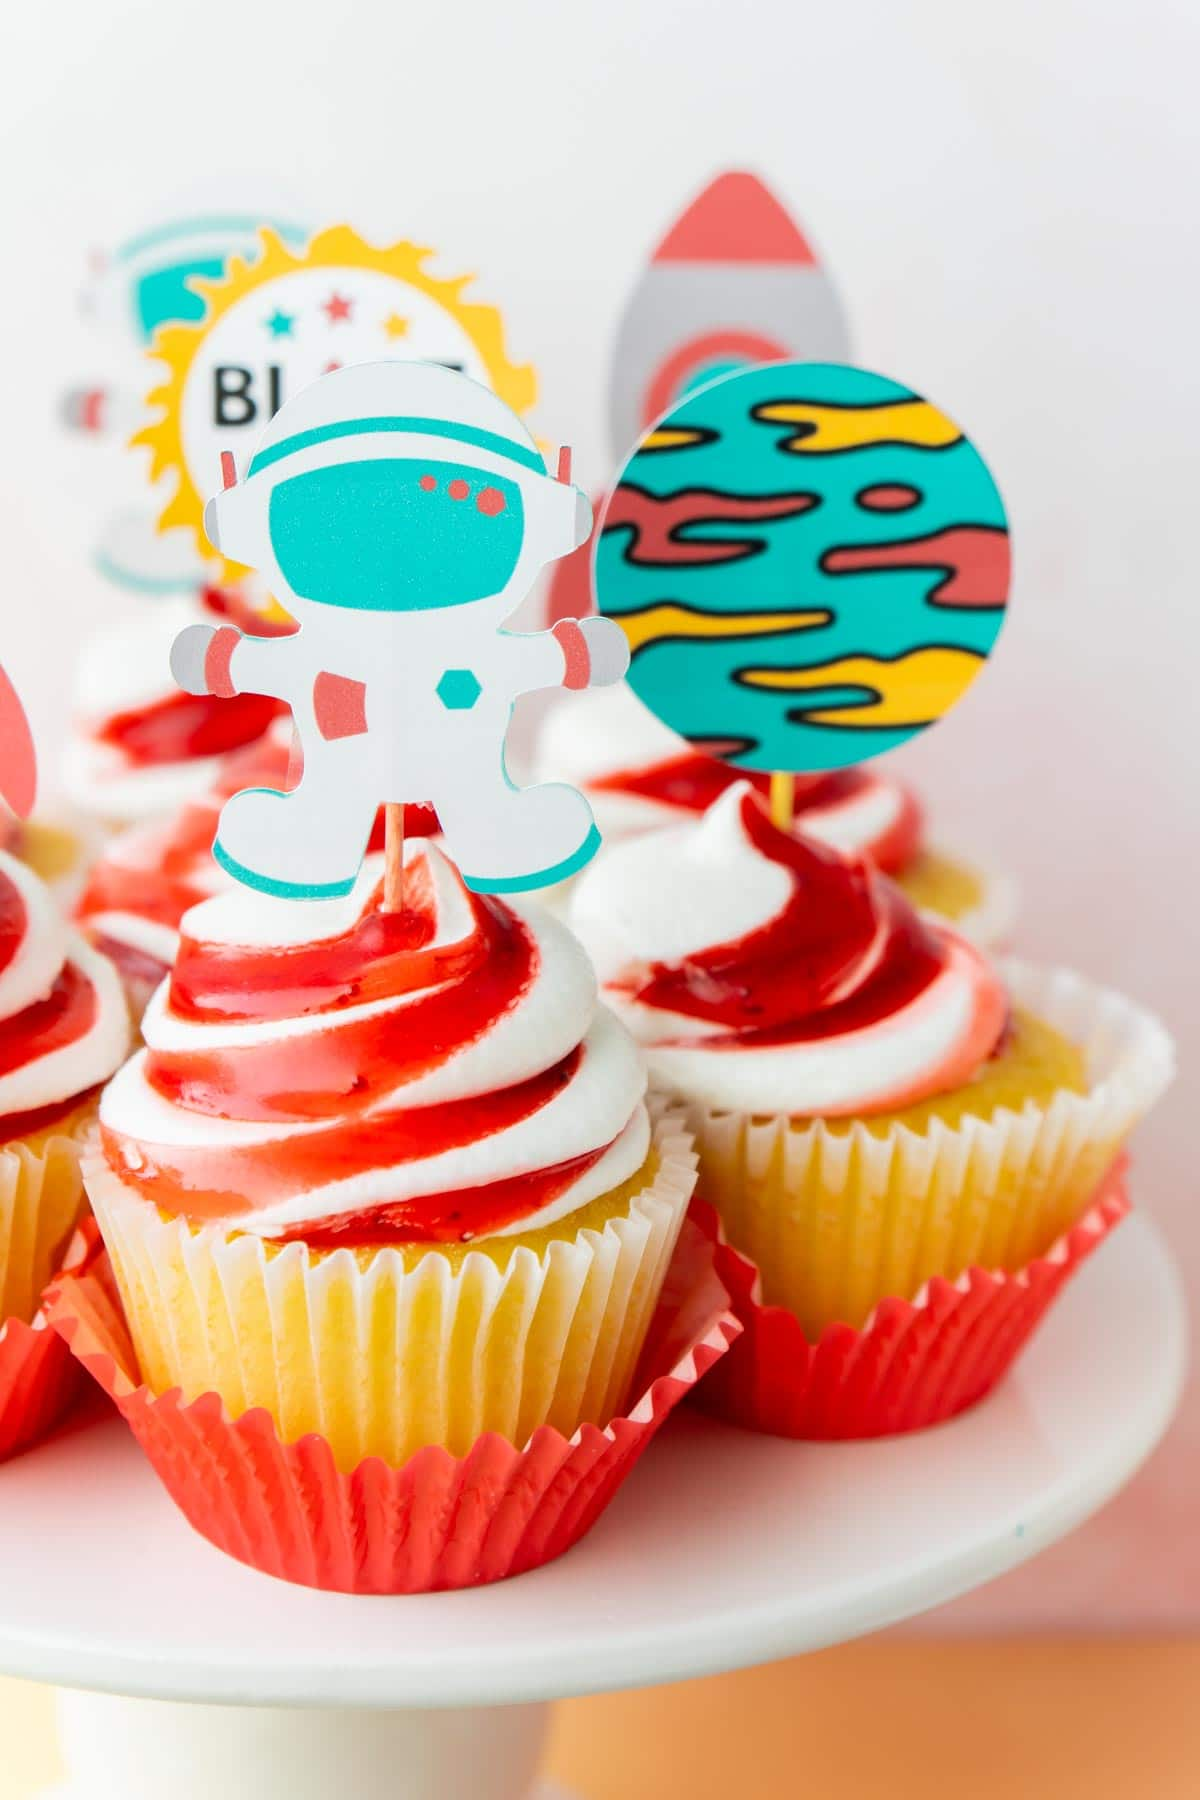 Cupcakes with red frosting and outer space cupcake toppers